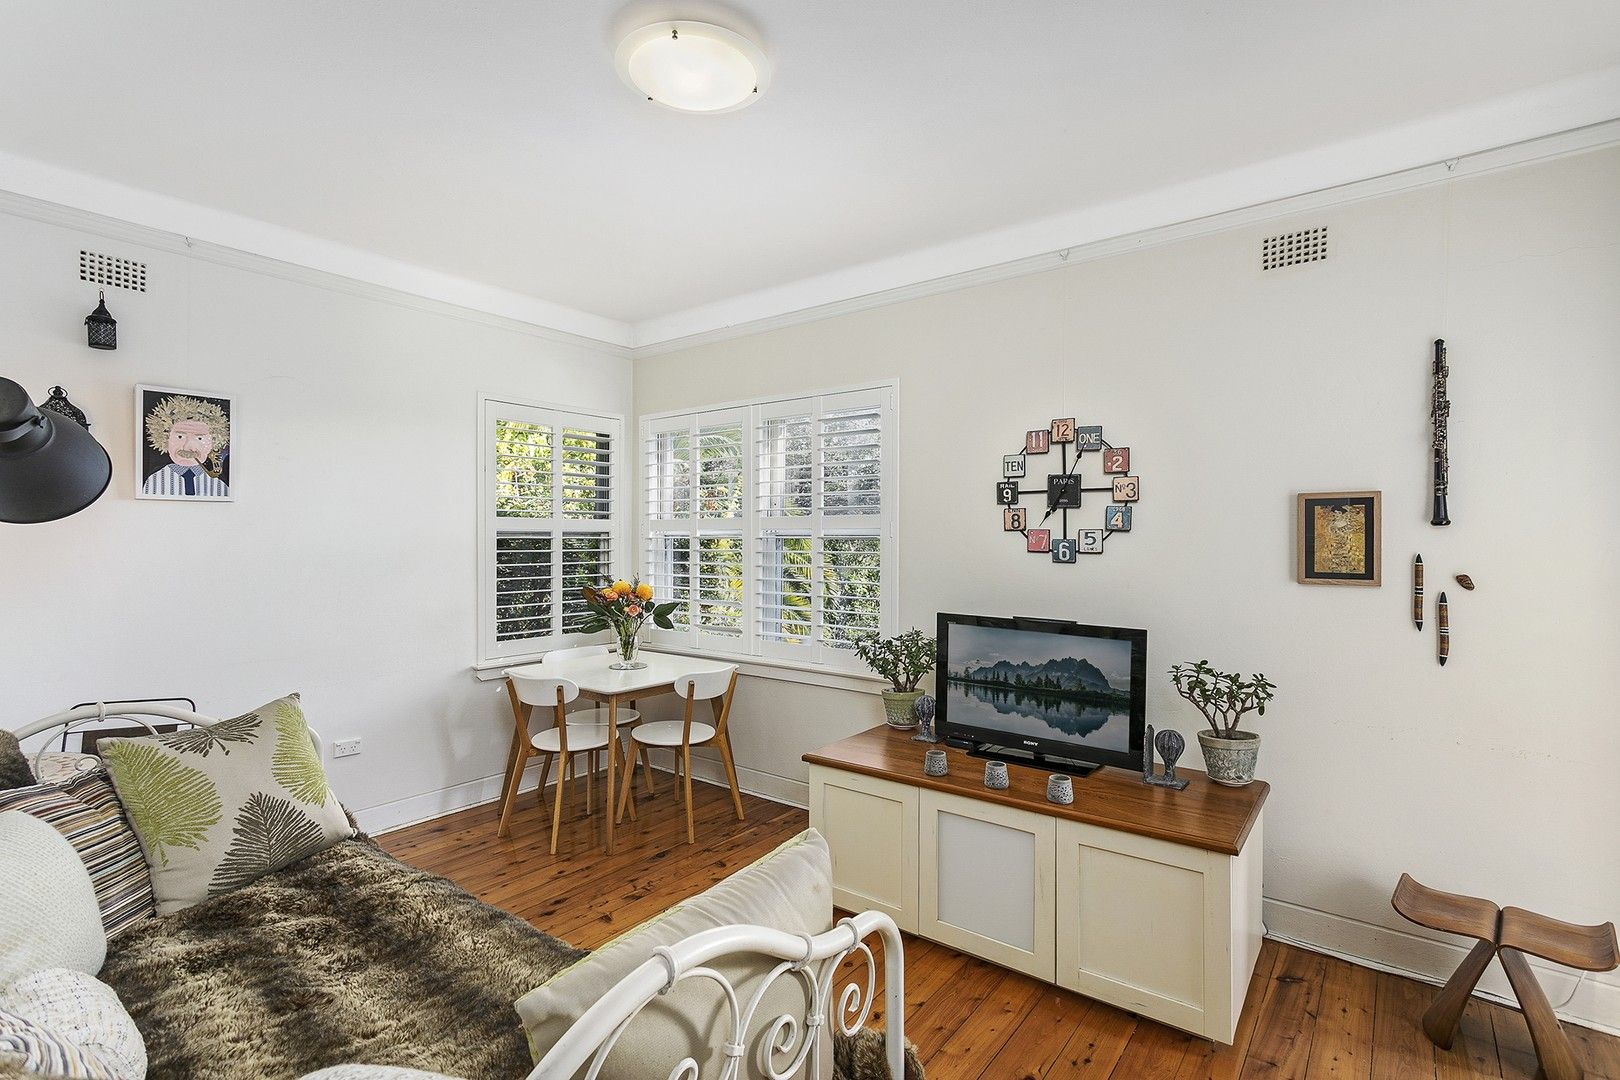 2 bedrooms Apartment / Unit / Flat in 1/71A Carter Street CAMMERAY NSW, 2062